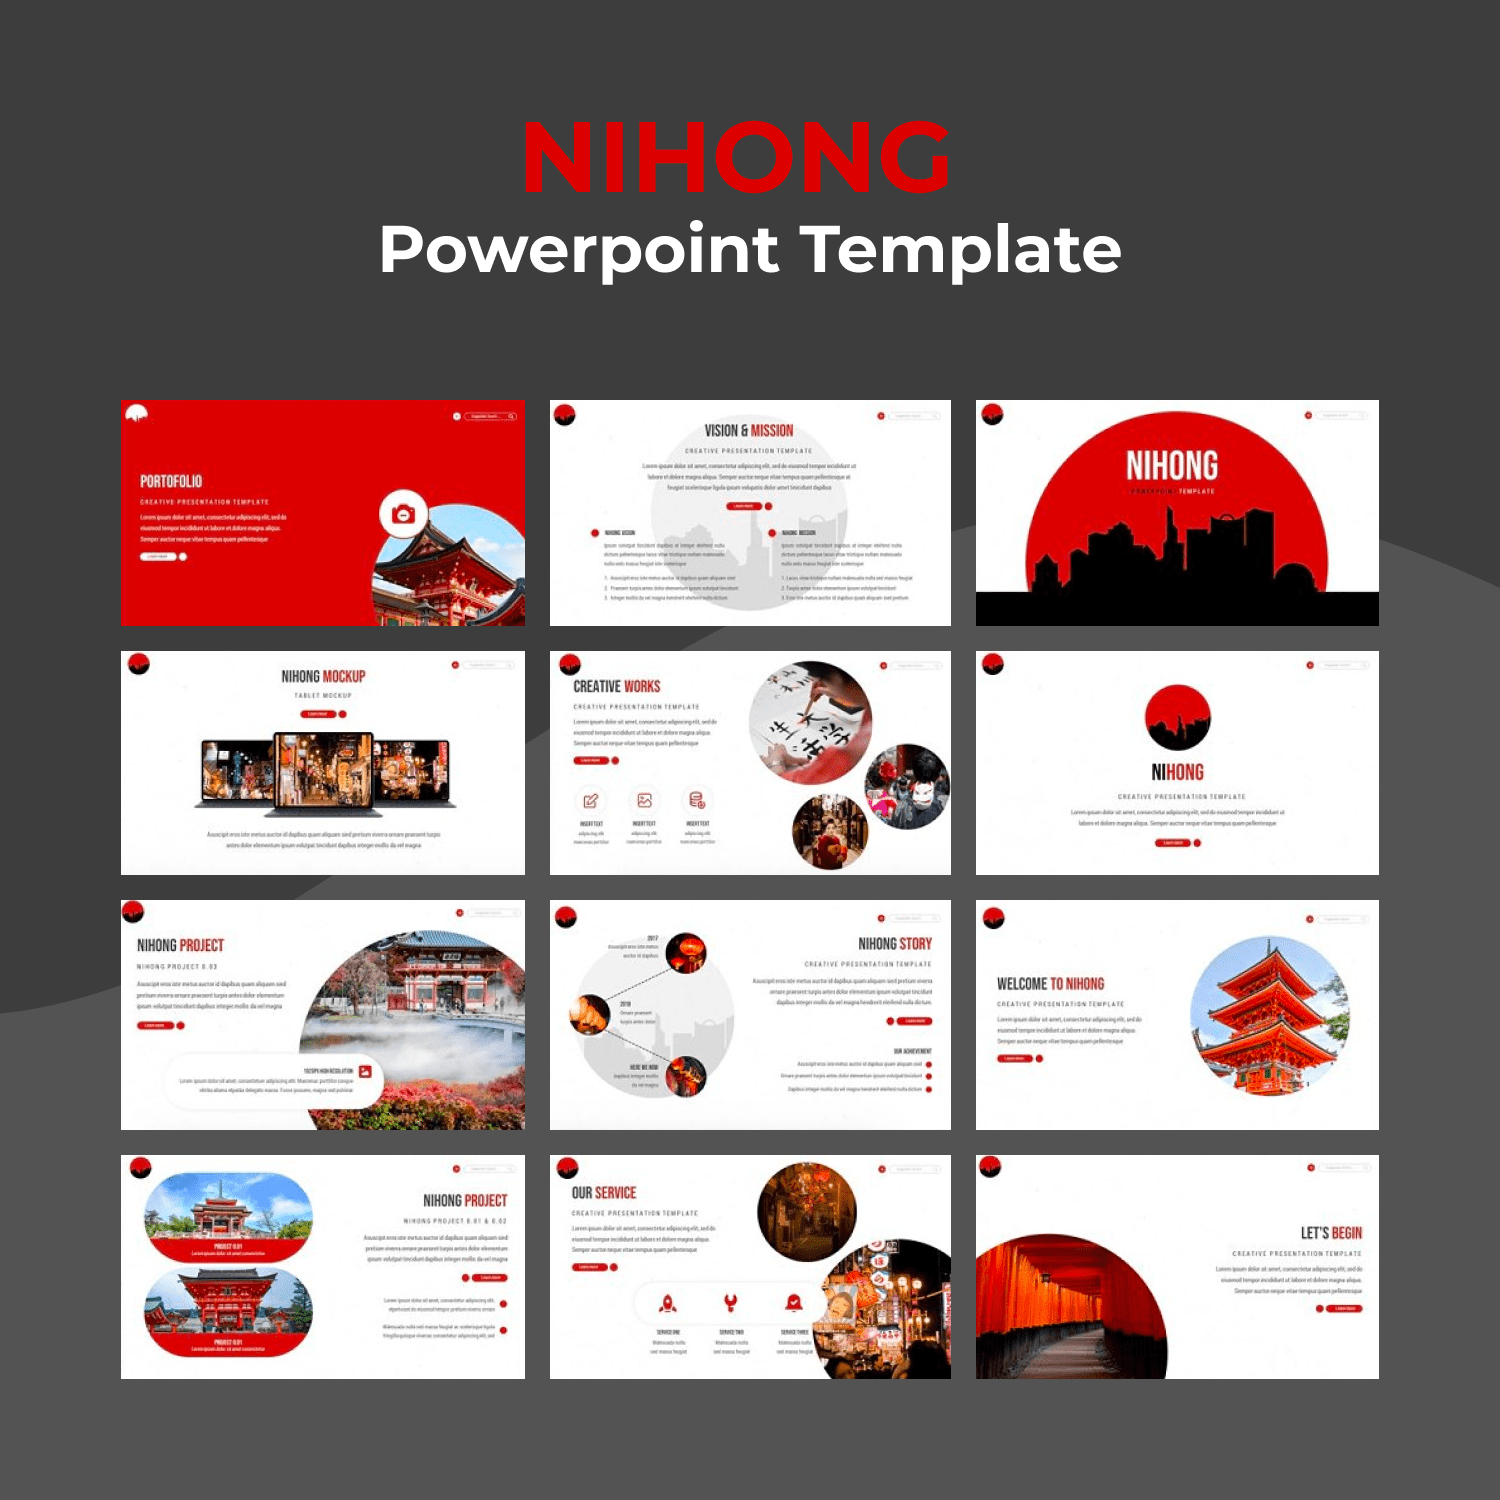 Nihong Powerpoint Template main cover.